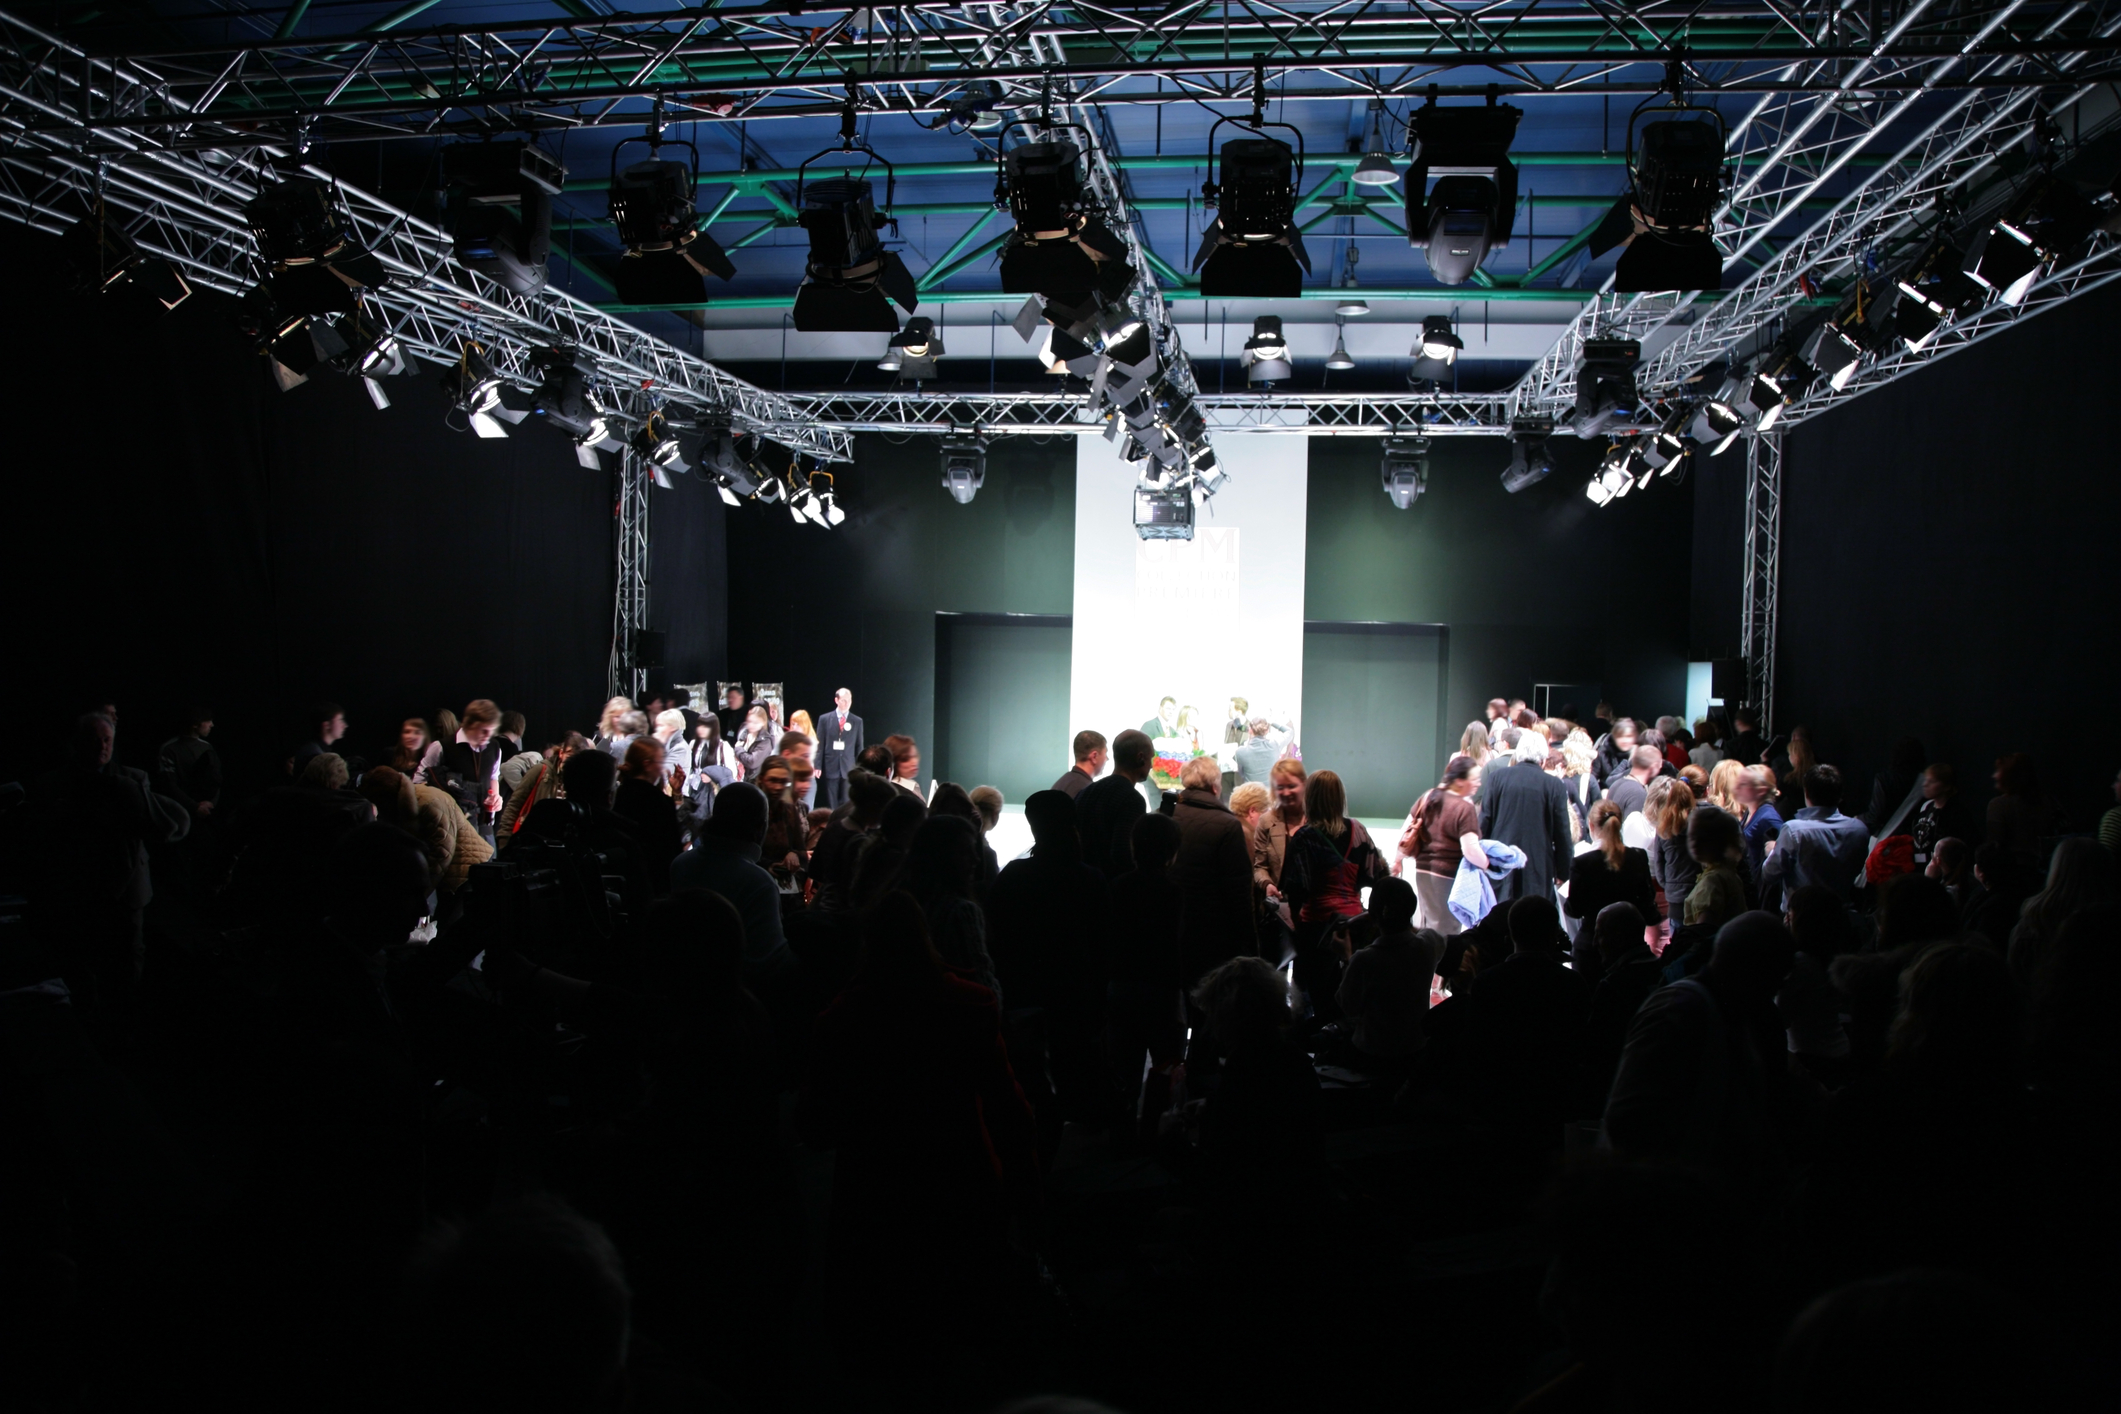 Lighting Hire Events Company Projector Hire for Fashion Shows and Exhibitions